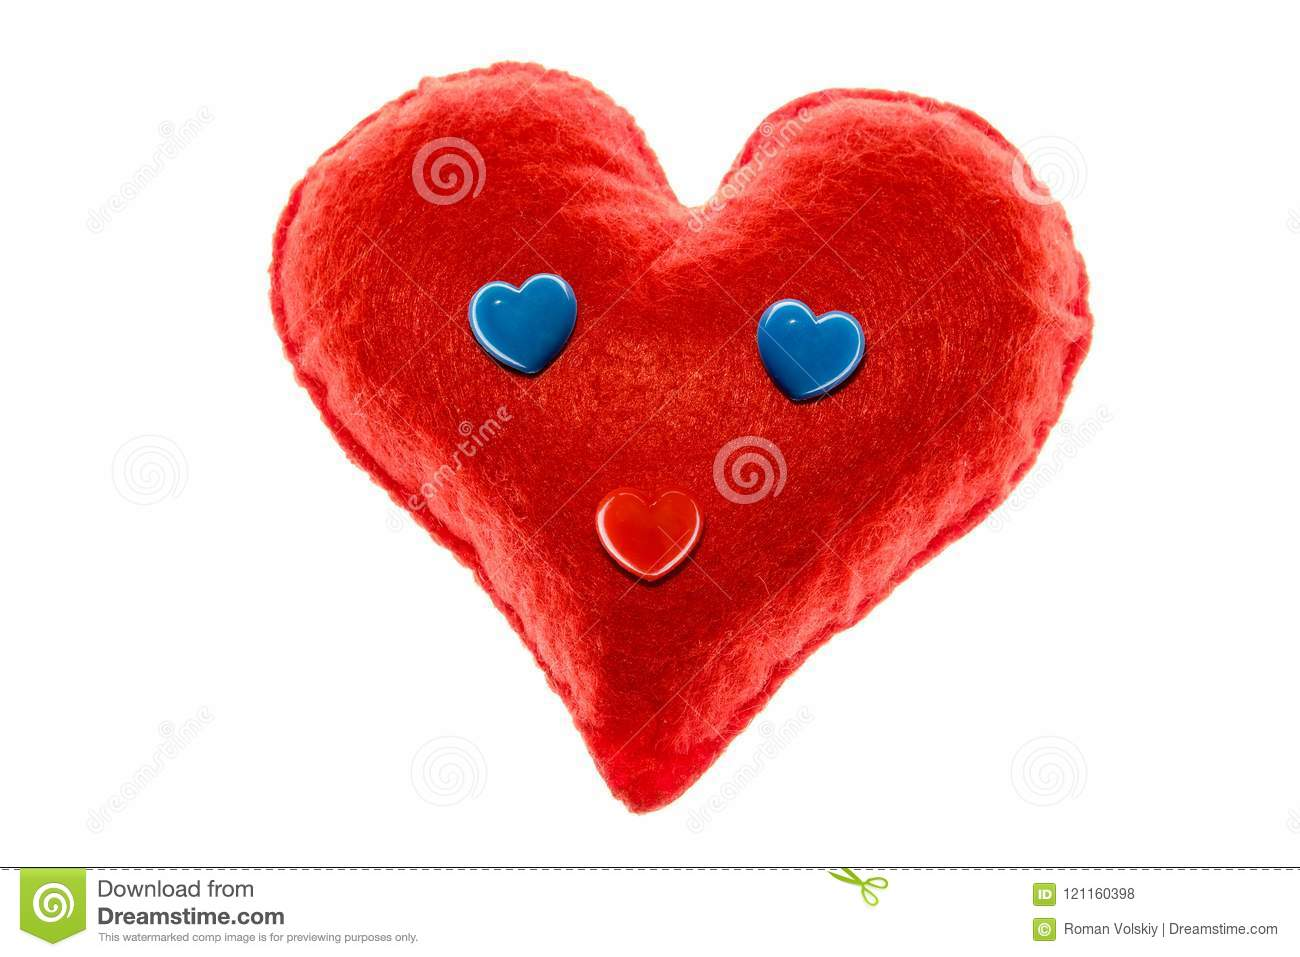 Soft Red Heart Emotion With Blue Eyes A Symbol Of Love And